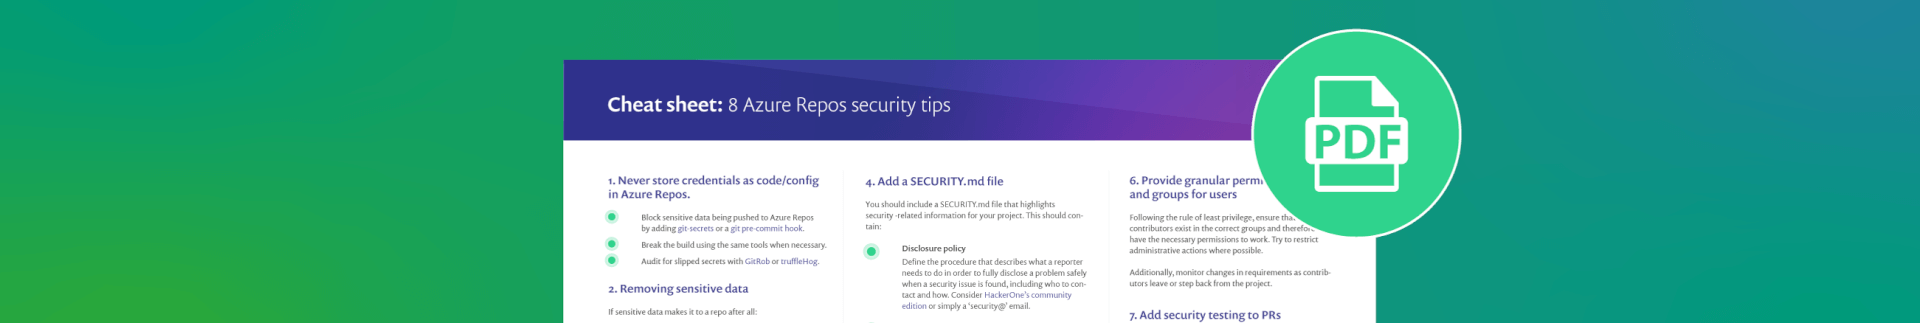 Add security testing to pull requests in Azure Repos   Snyk